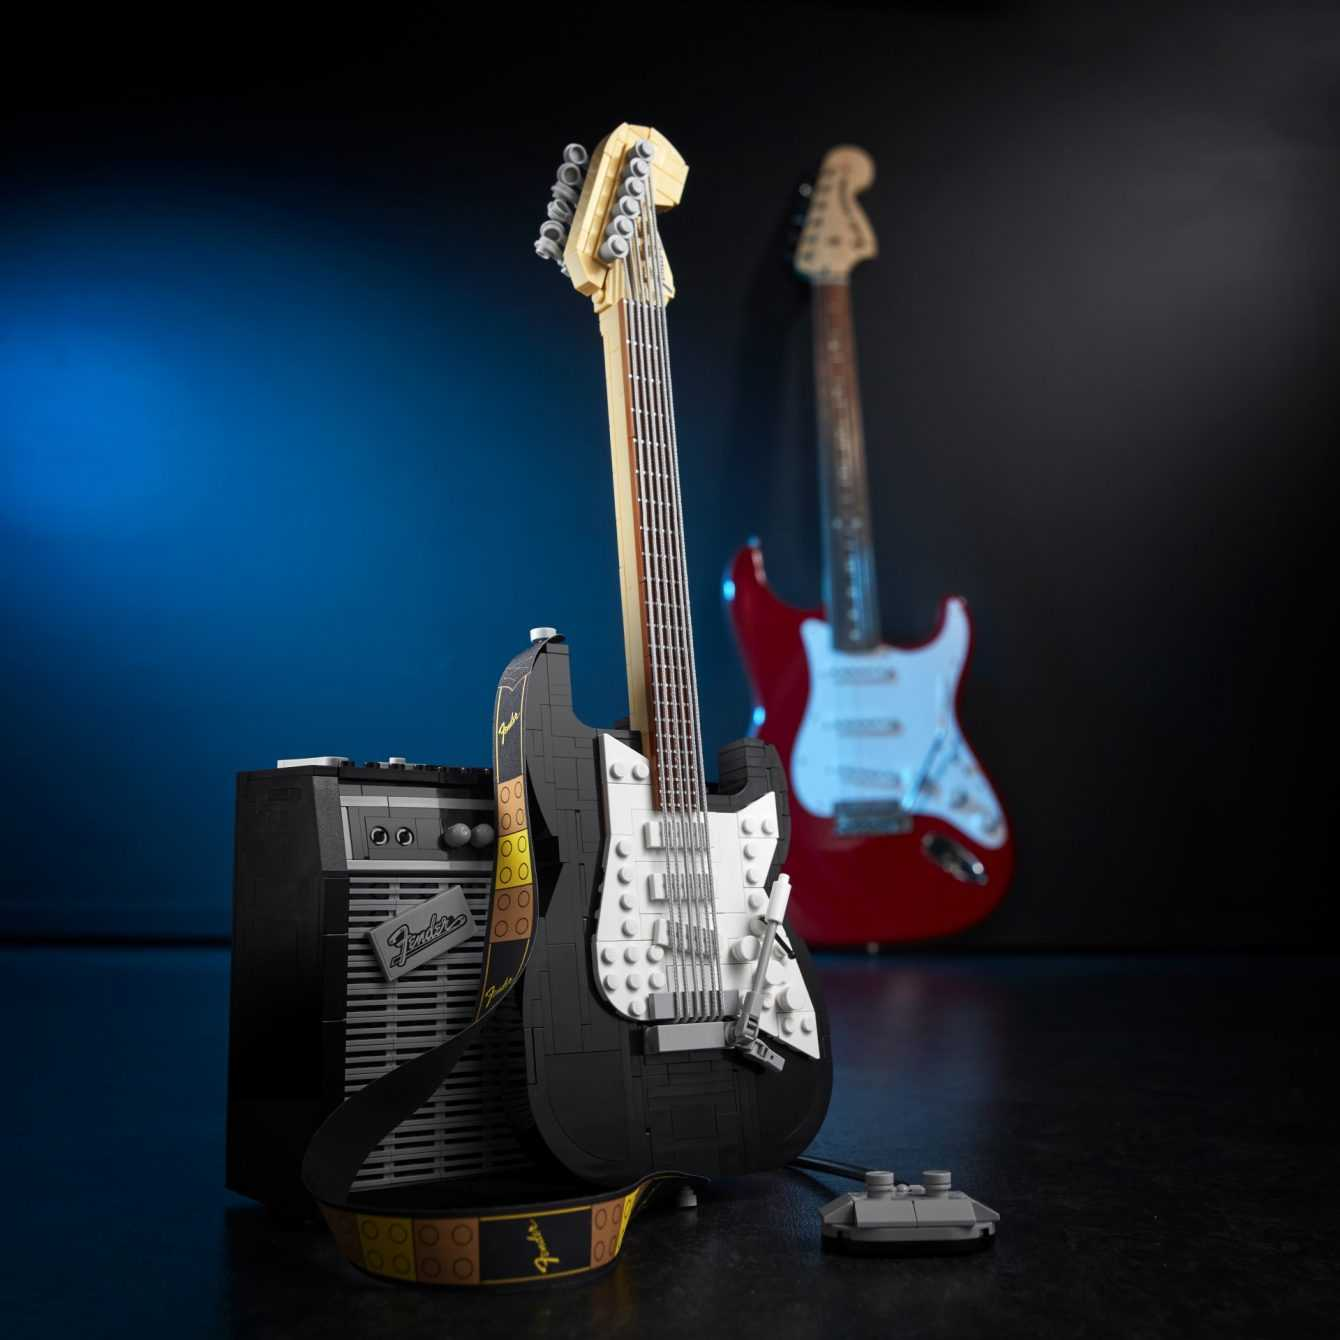 Introducing the new LEGO Ideas Fender Stratocaster set!